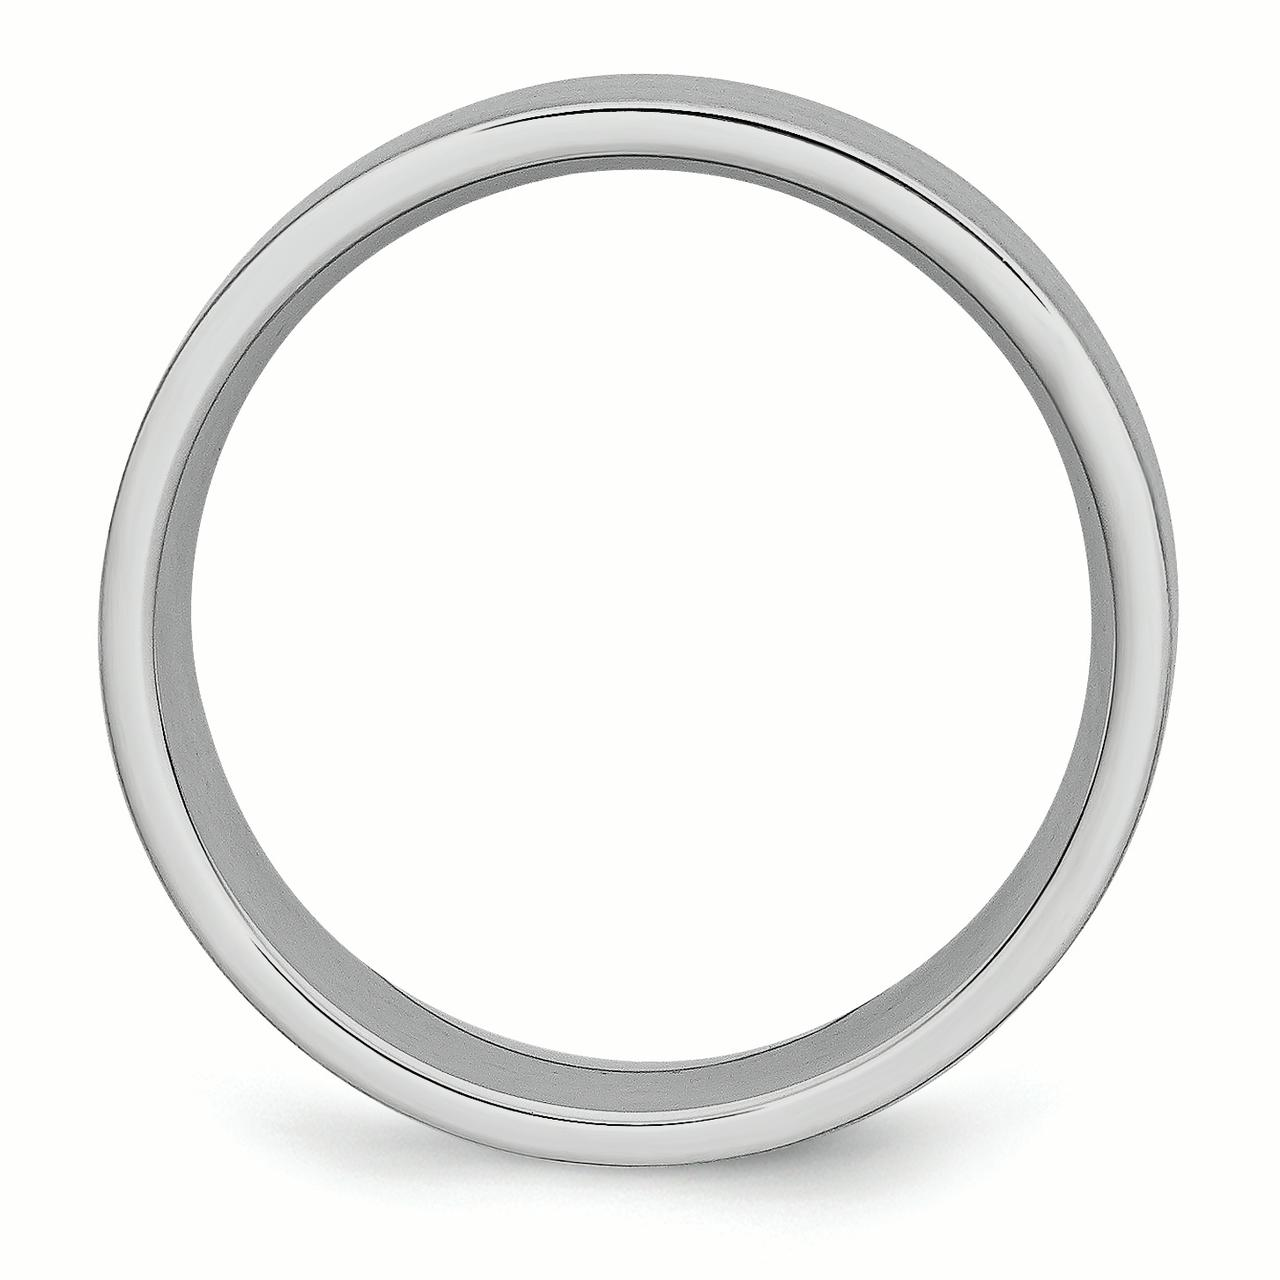 Cobalt Flat 8mm Wedding Ring Band Size 7.00 Classic Fashion Jewelry Gifts For Women For Her - image 2 of 6